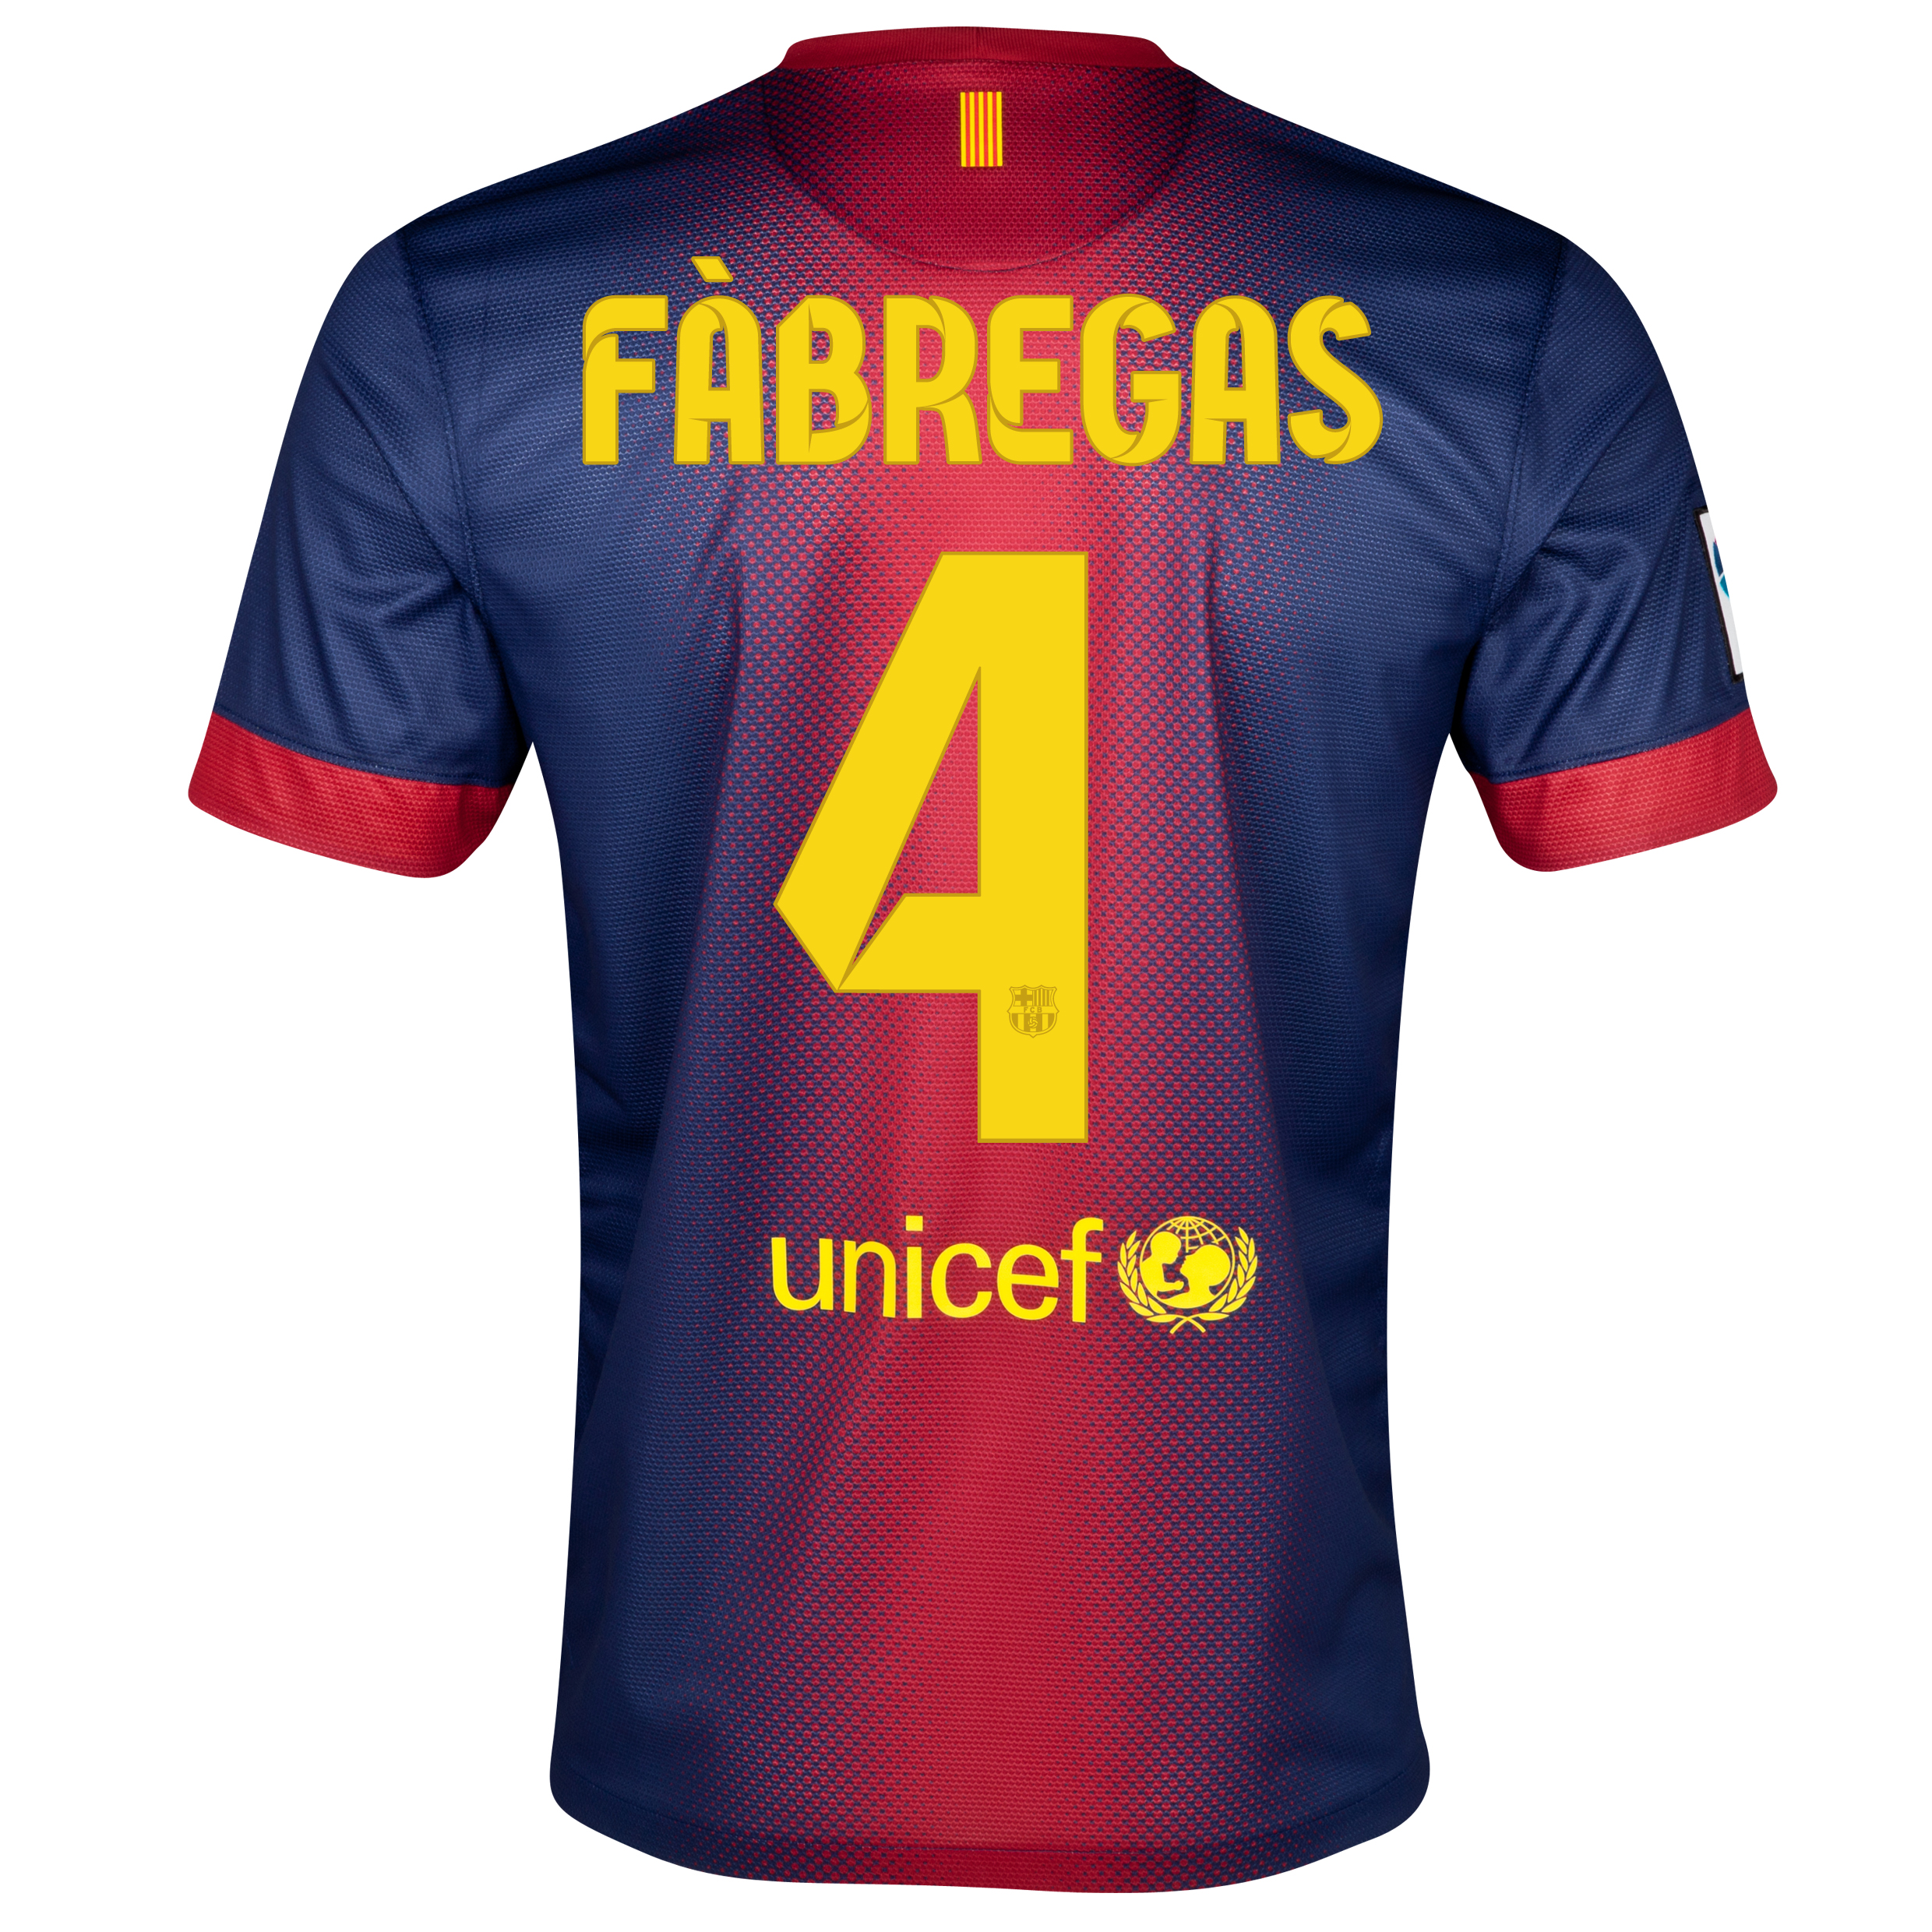 Barcelona Home Shirt 2012/13 with Fabregas 4 printing